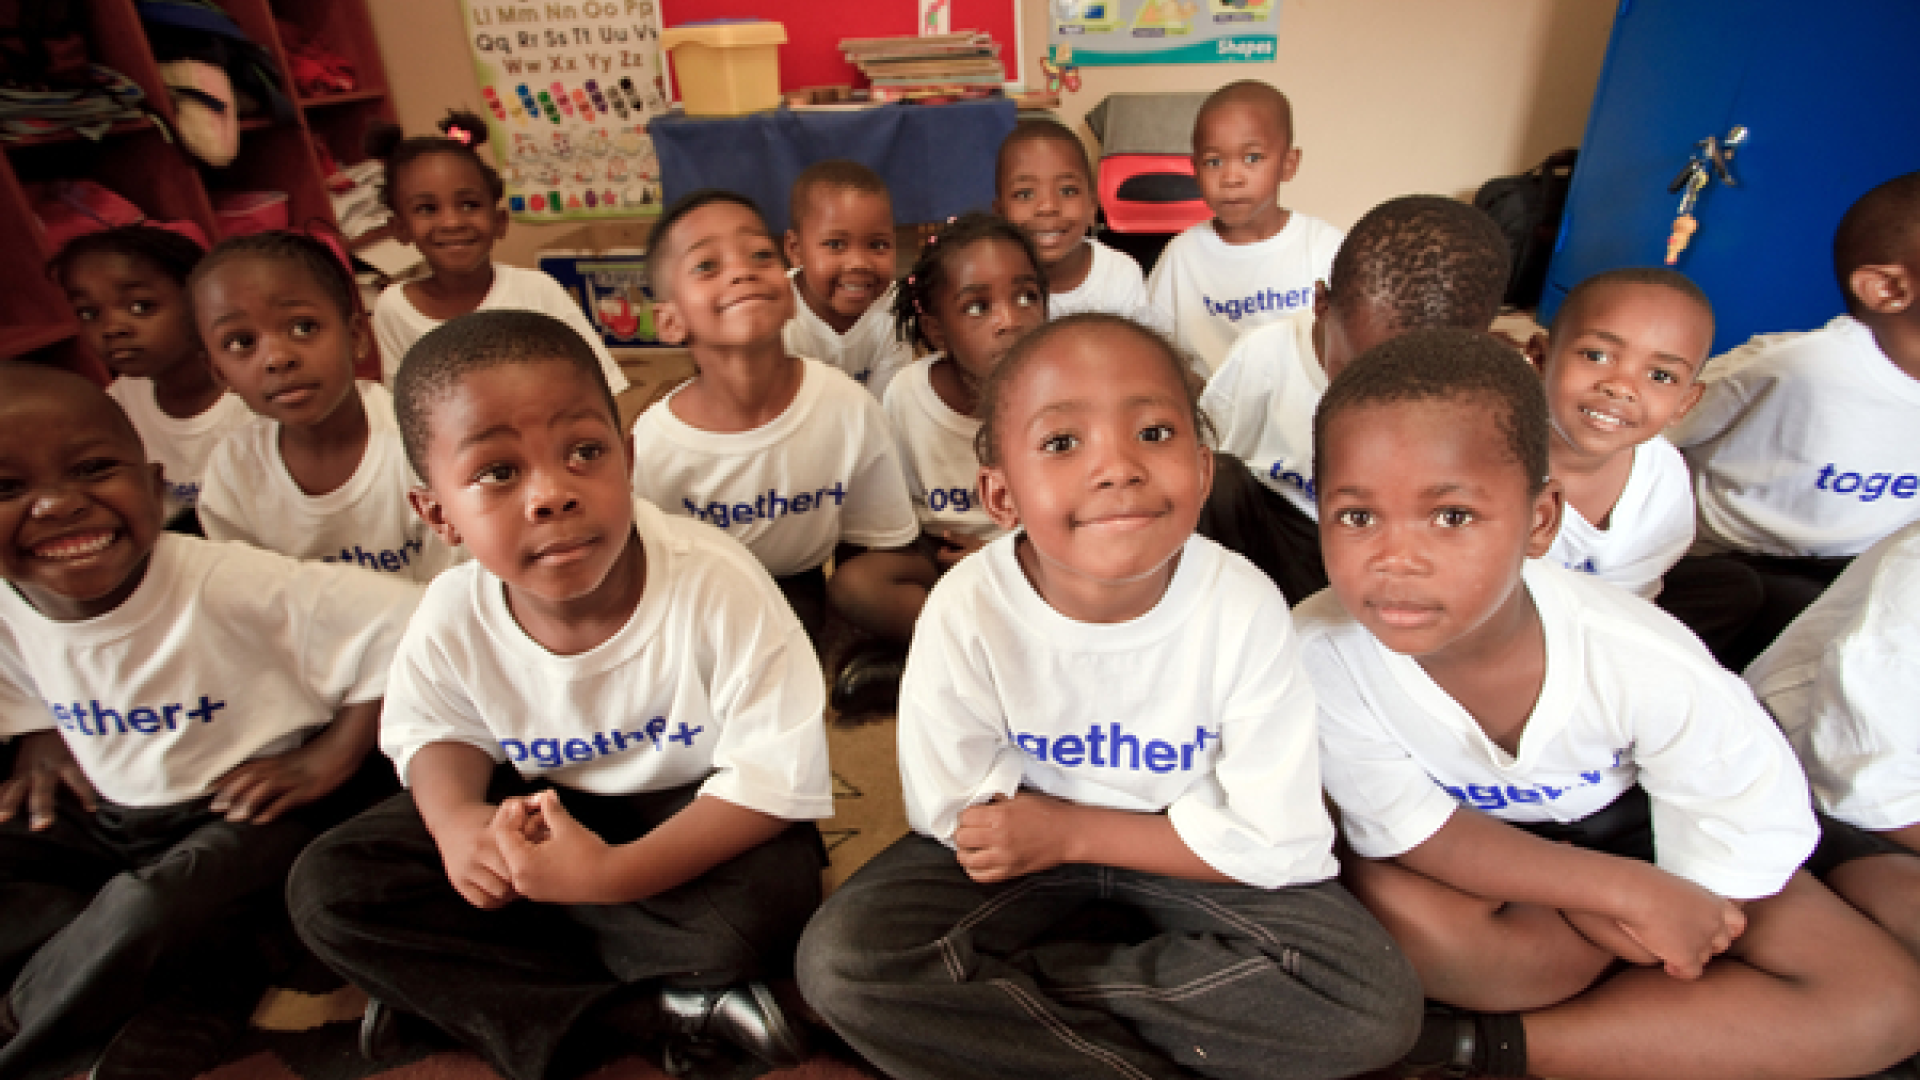 Together+ project in partnership with  Kgosi Foundation  and  University of Notre Dame . Image courtesy of Matt Cashore.